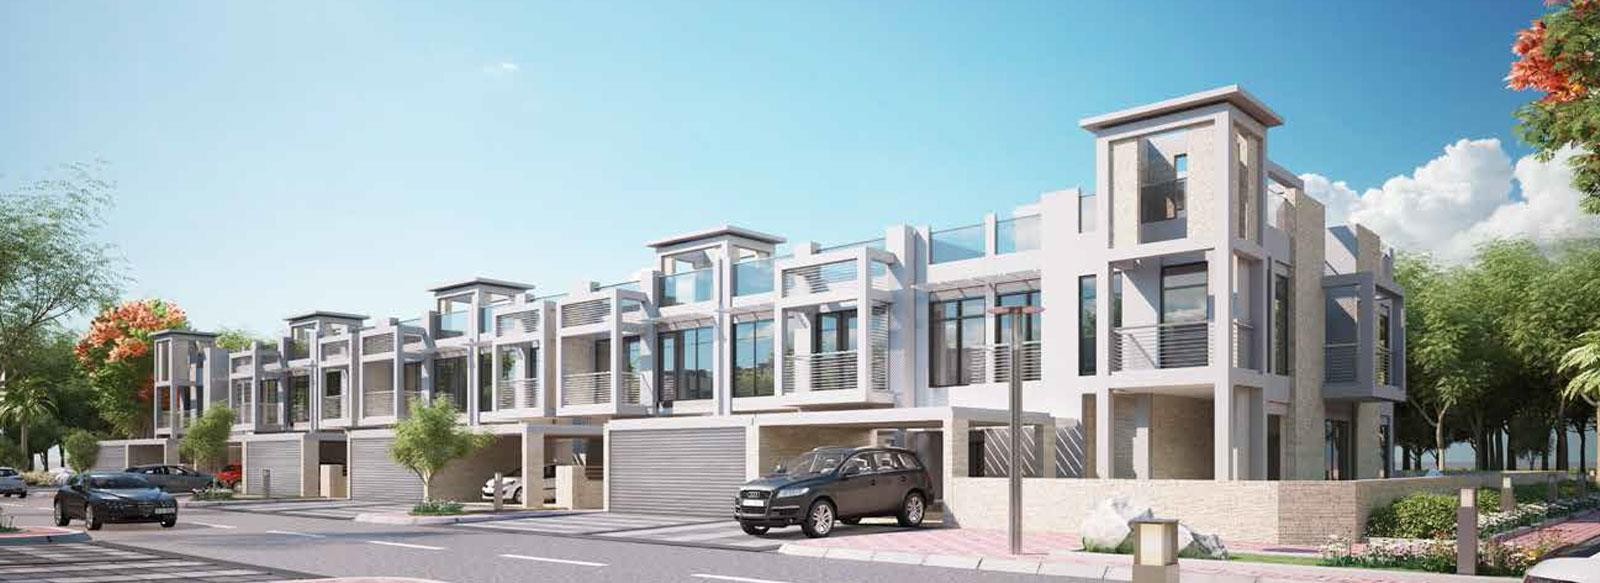 The Polo Townhouse - By MAG